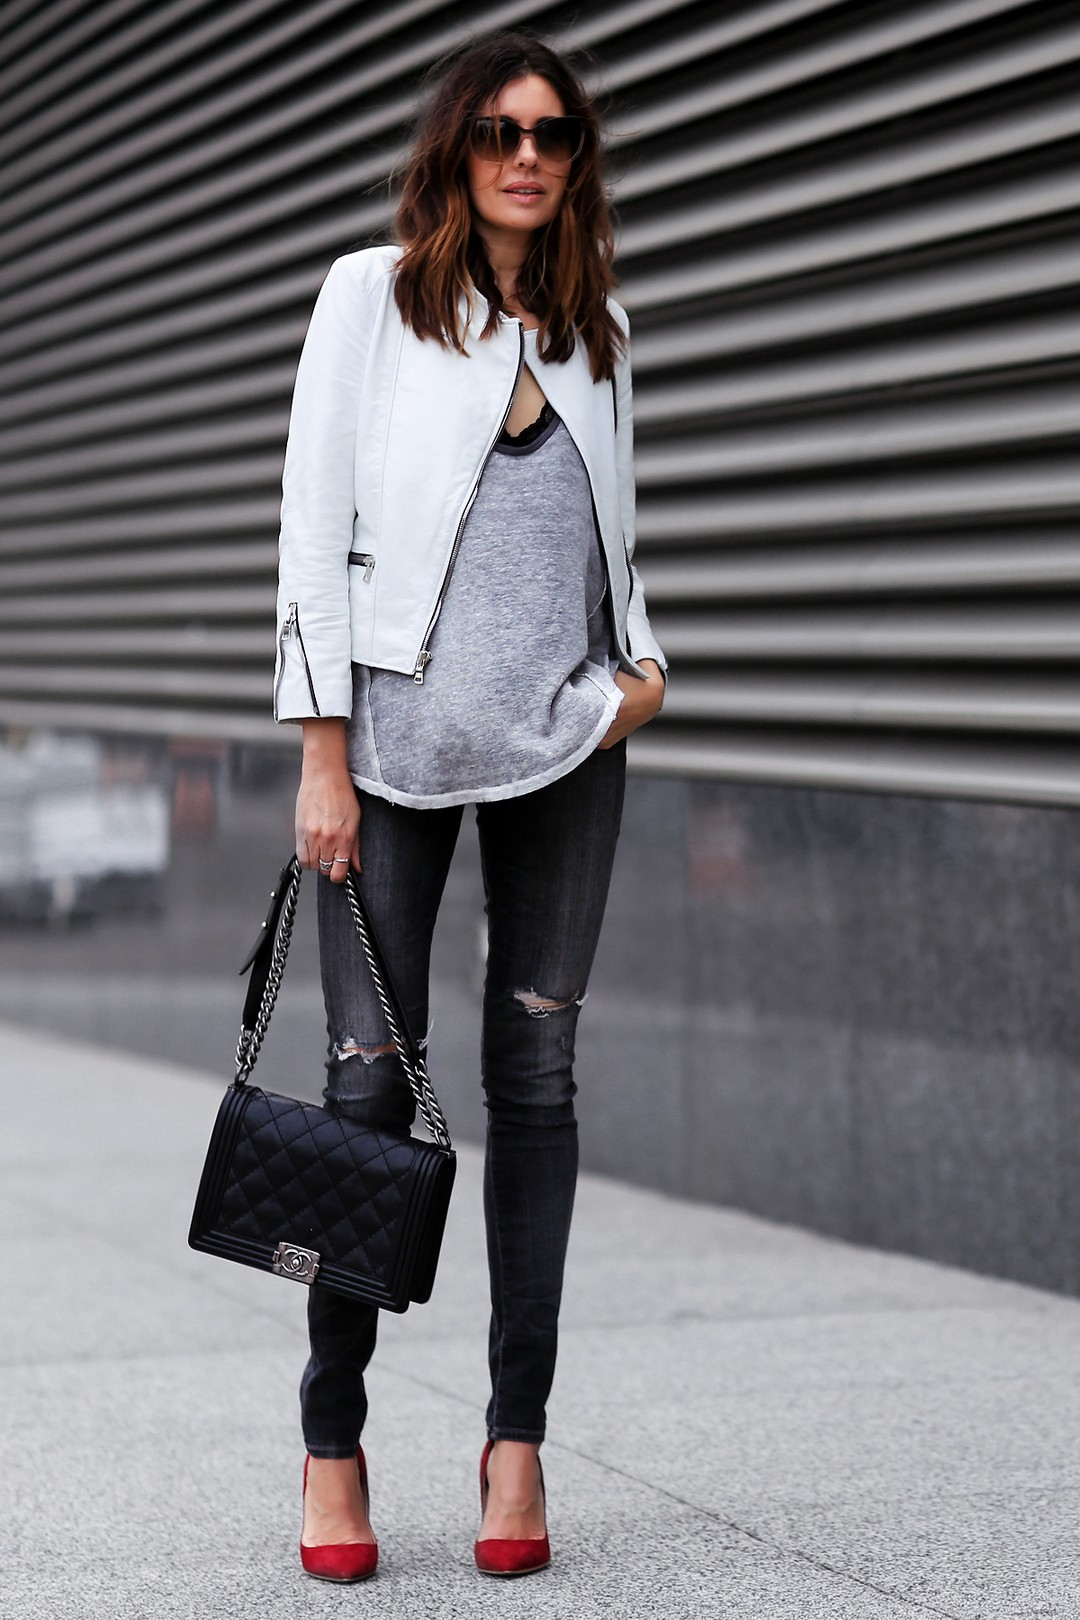 White Jacket Look with pop of red